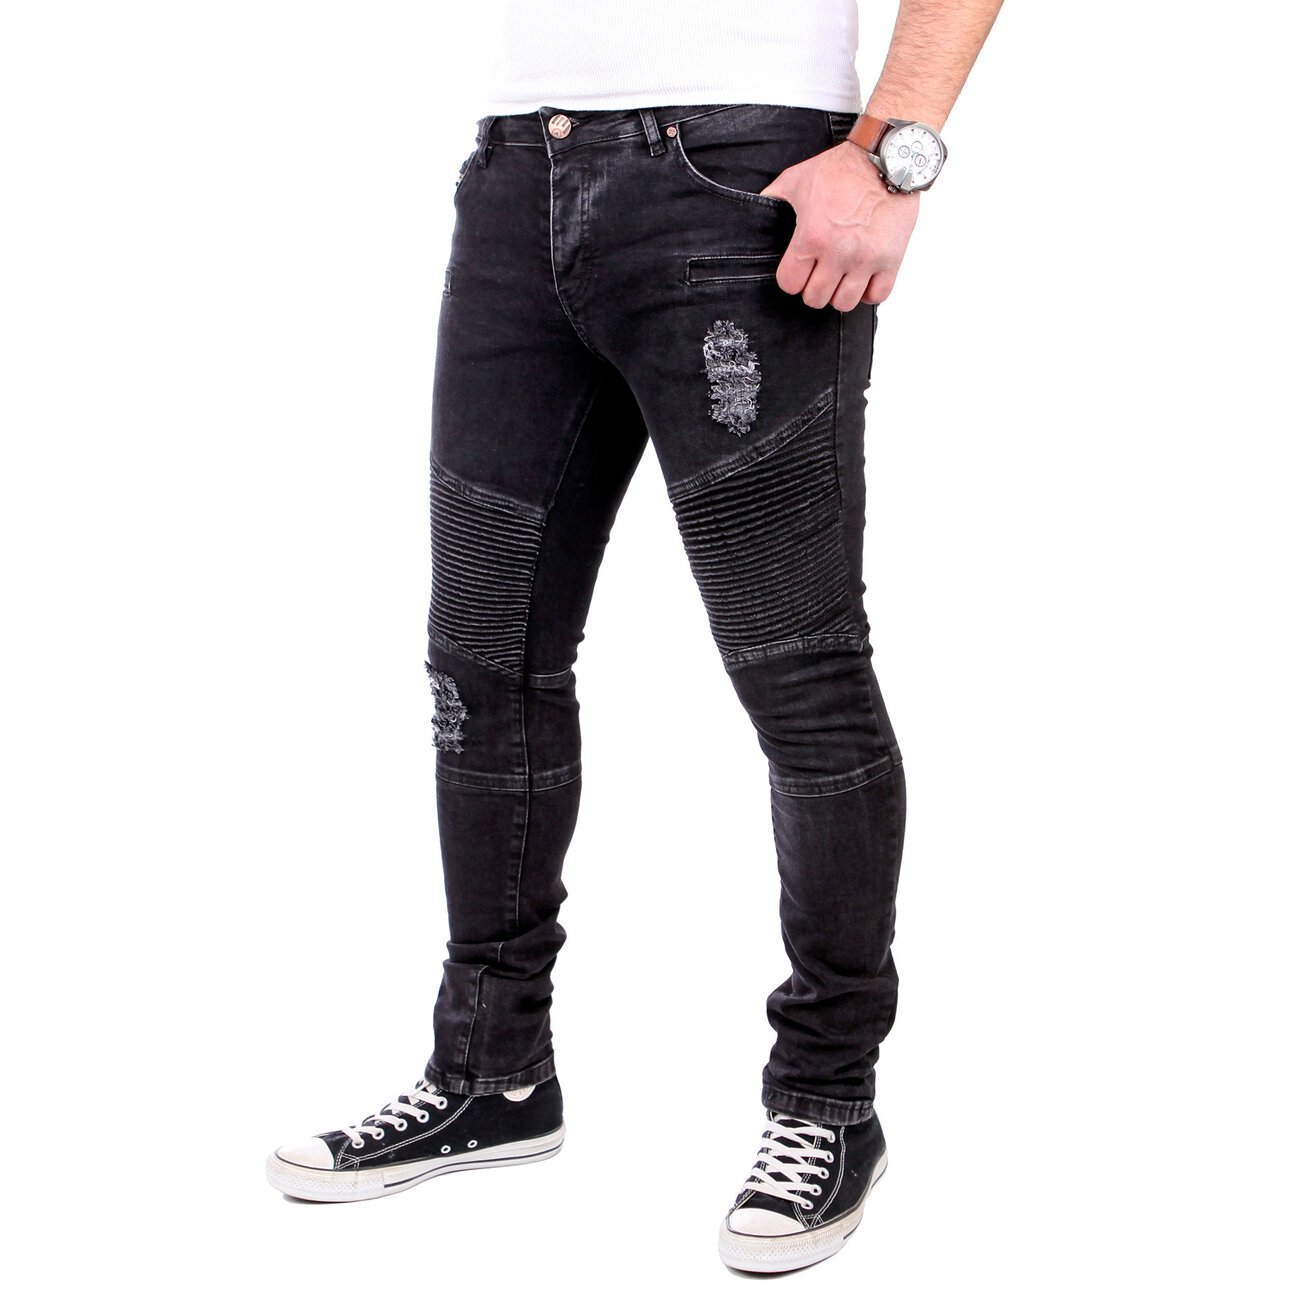 reslad jeans herren biker jeans slim fit denim stretch. Black Bedroom Furniture Sets. Home Design Ideas